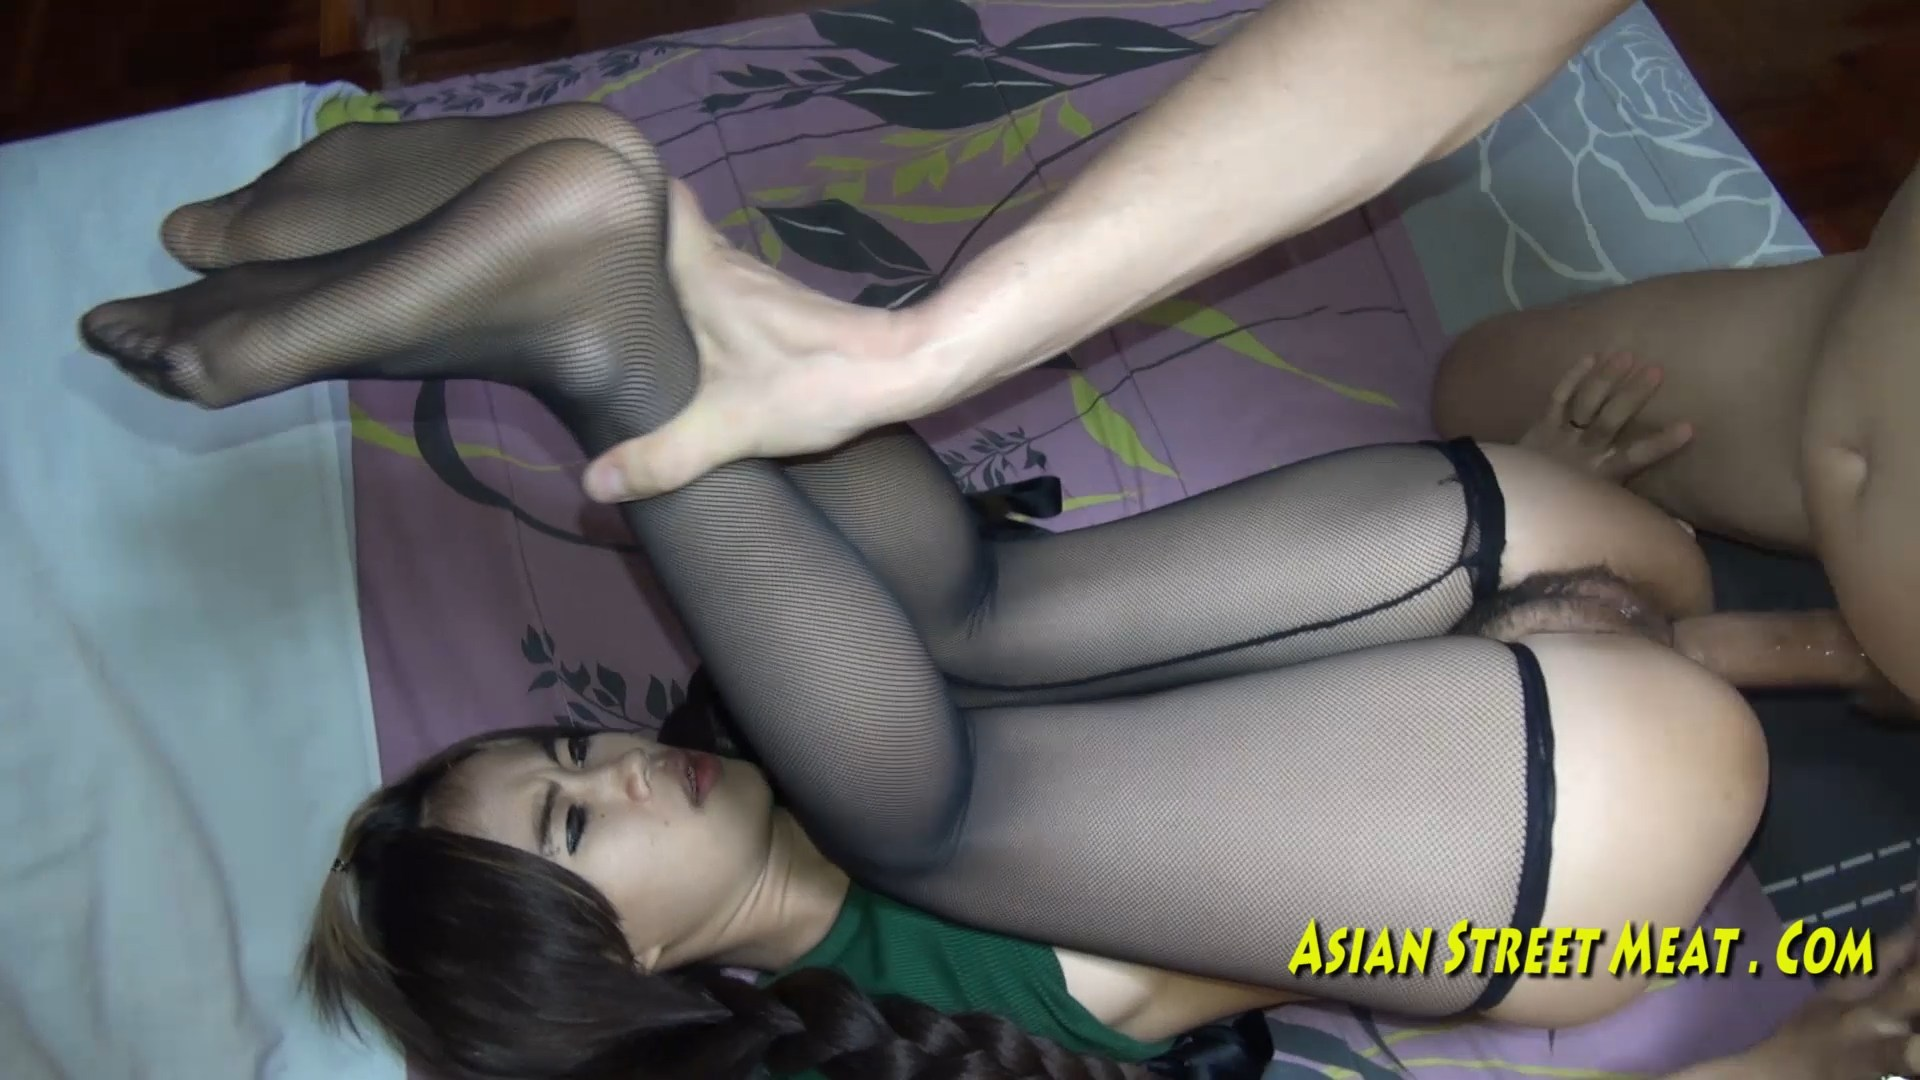 Anal asian creampie meat street